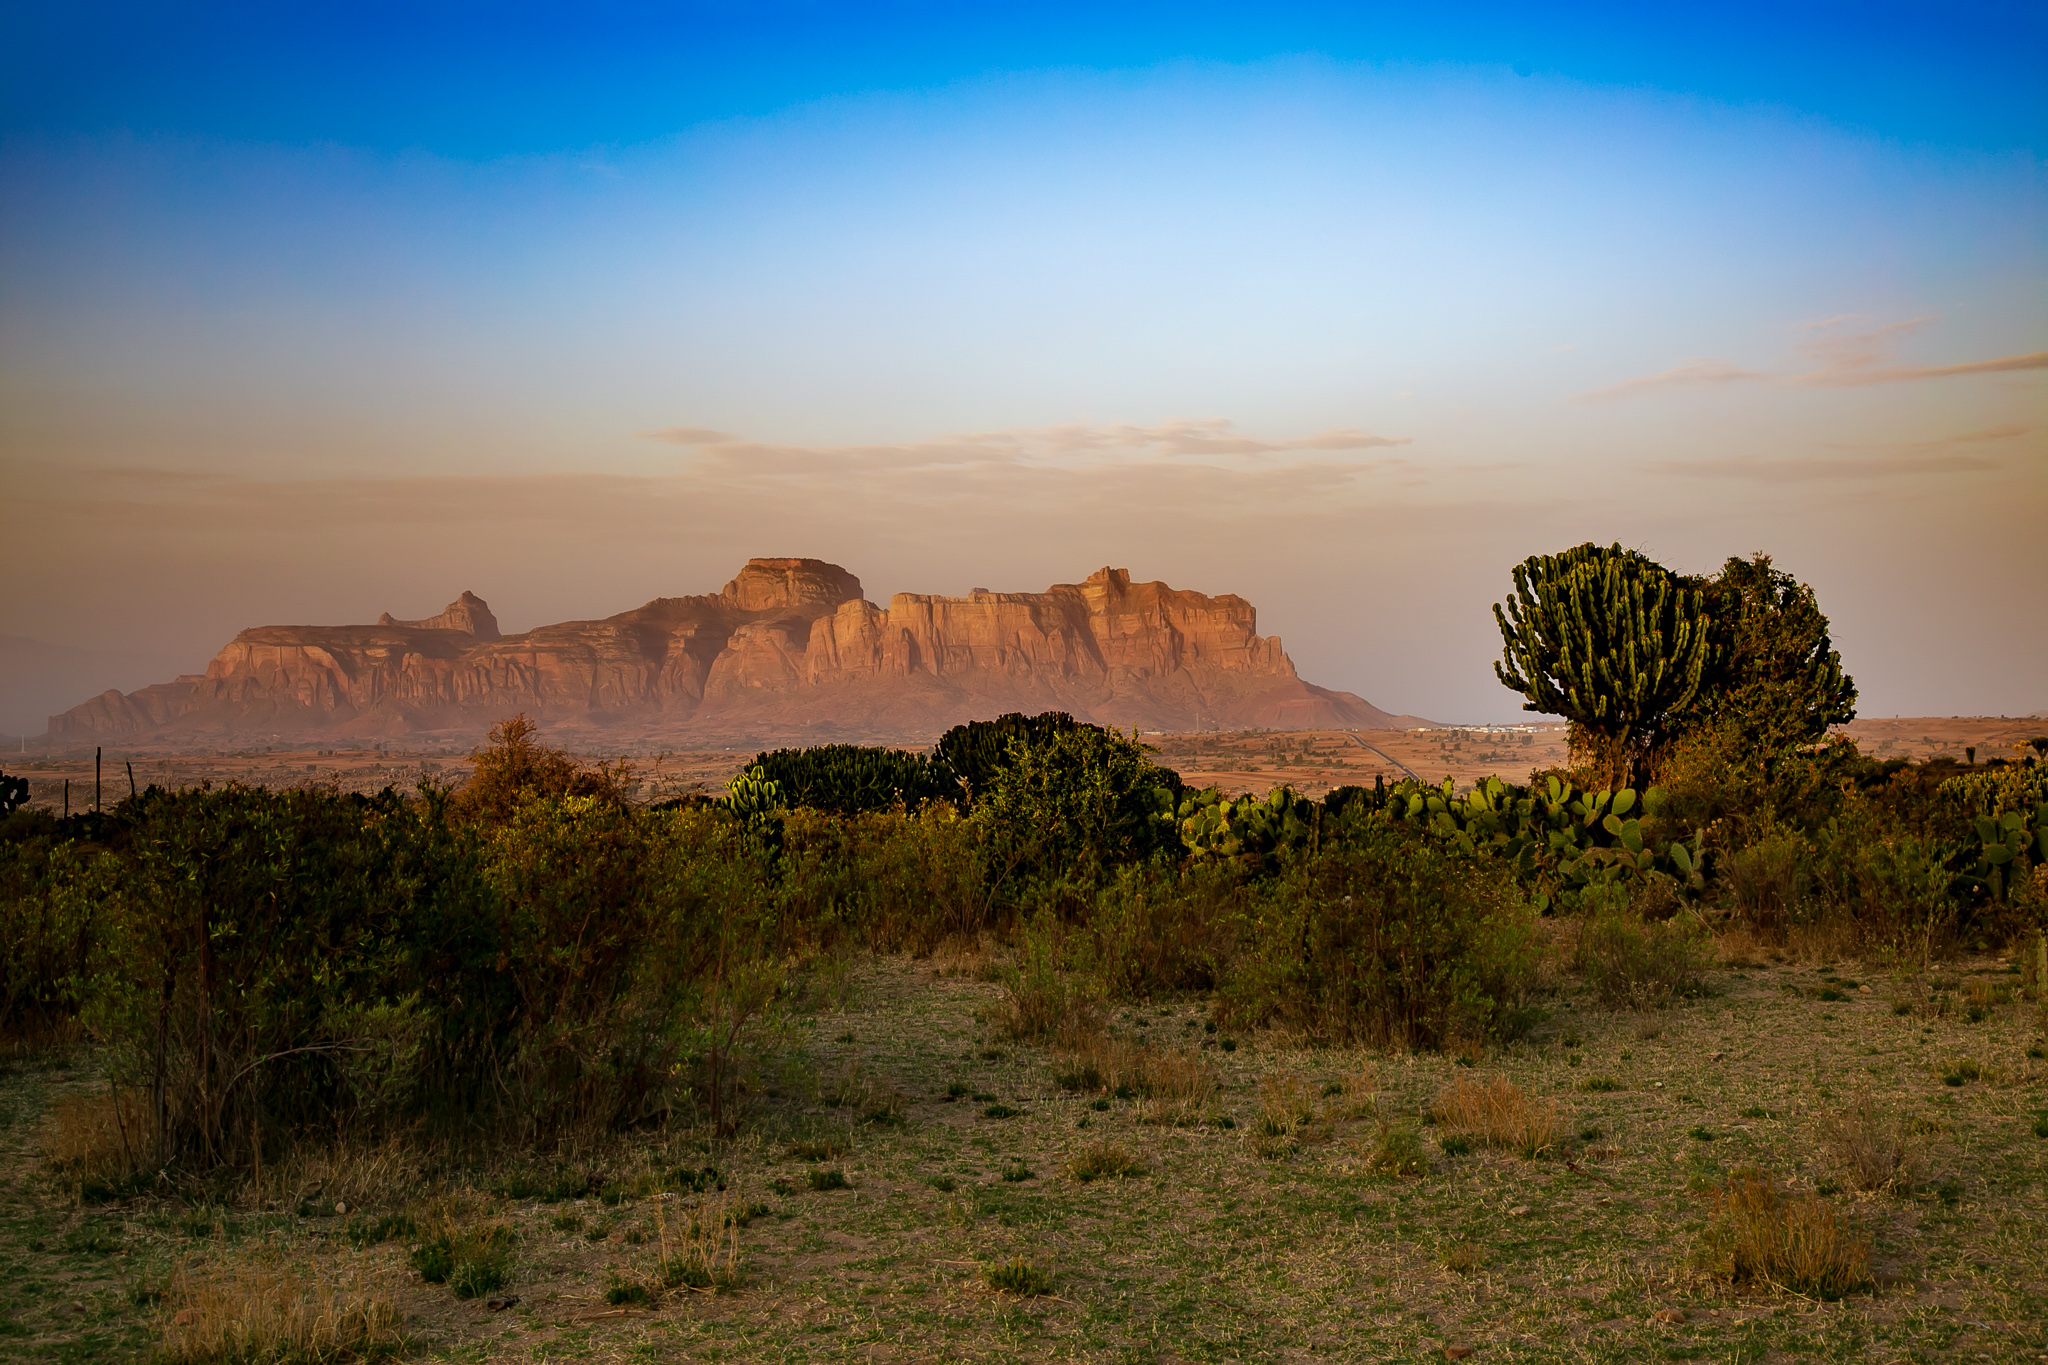 Stunning desert landscapes surround several of Tigray's rock-hewn churches. // photo © Kim I. Mott